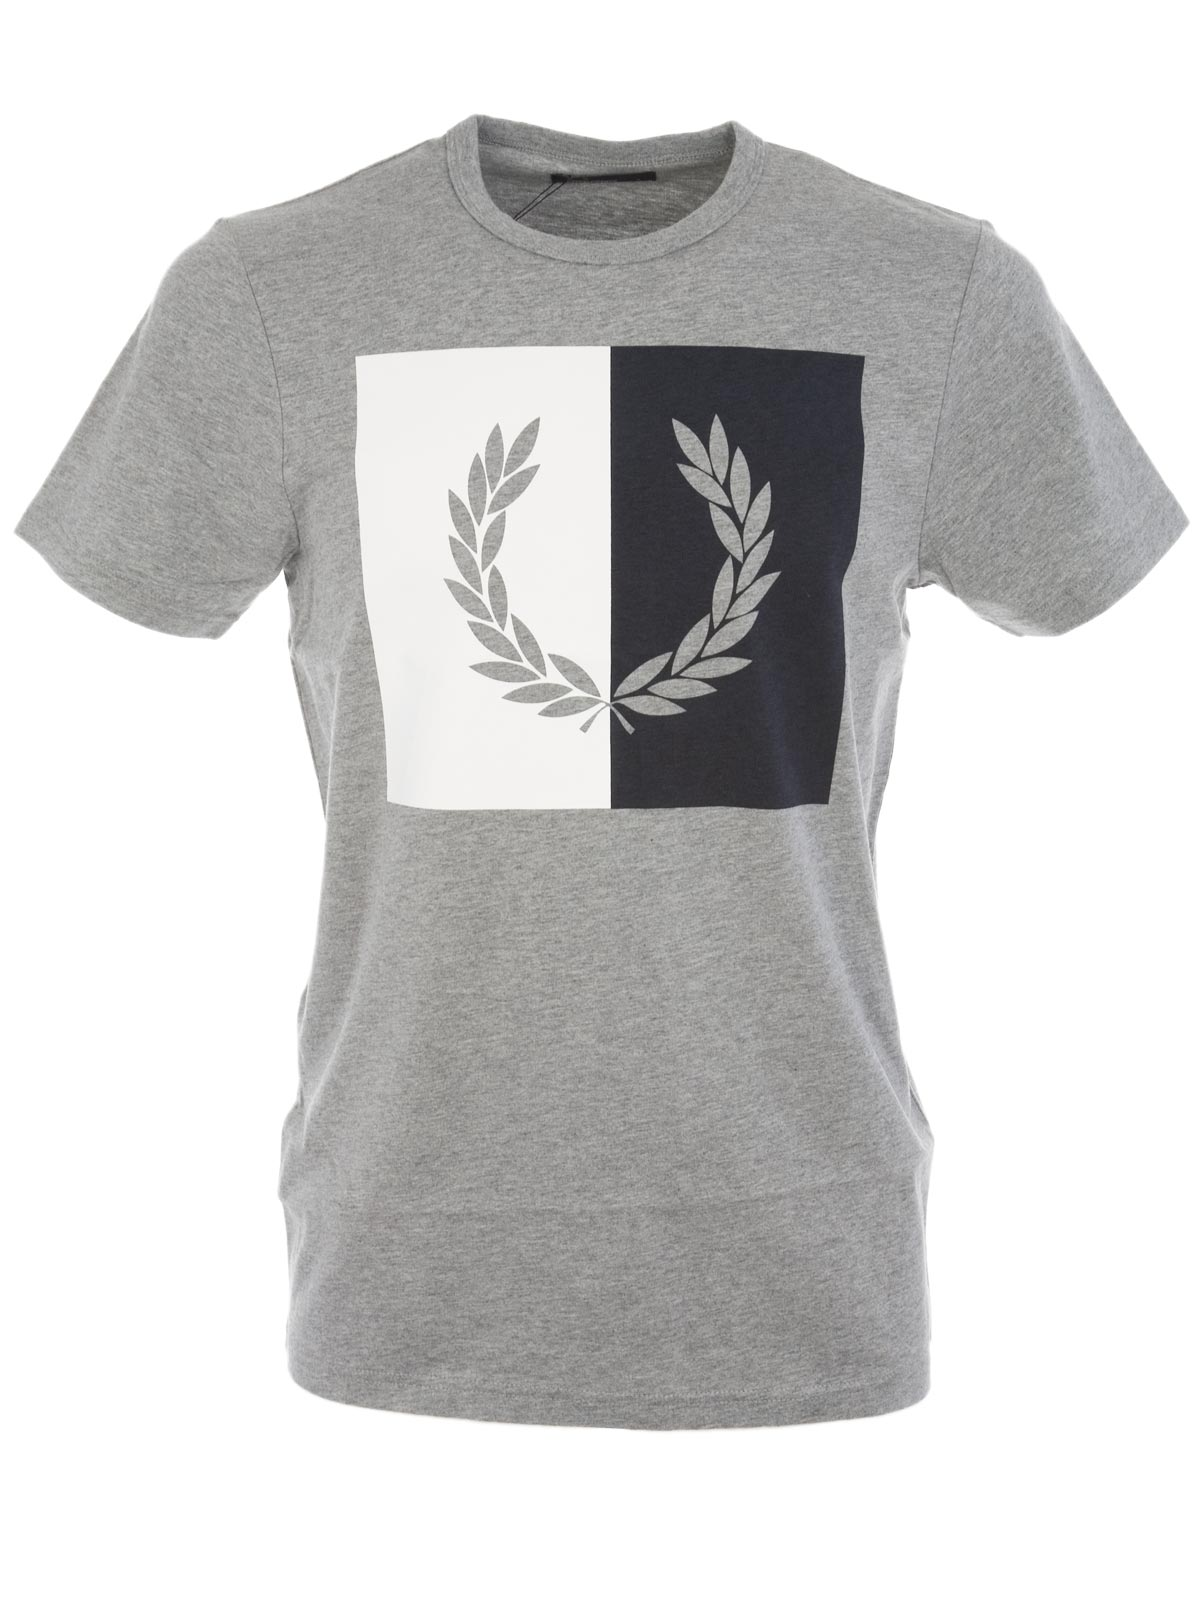 Immagine di FRED PERRY | T-Shirt Split Laurel Wreath